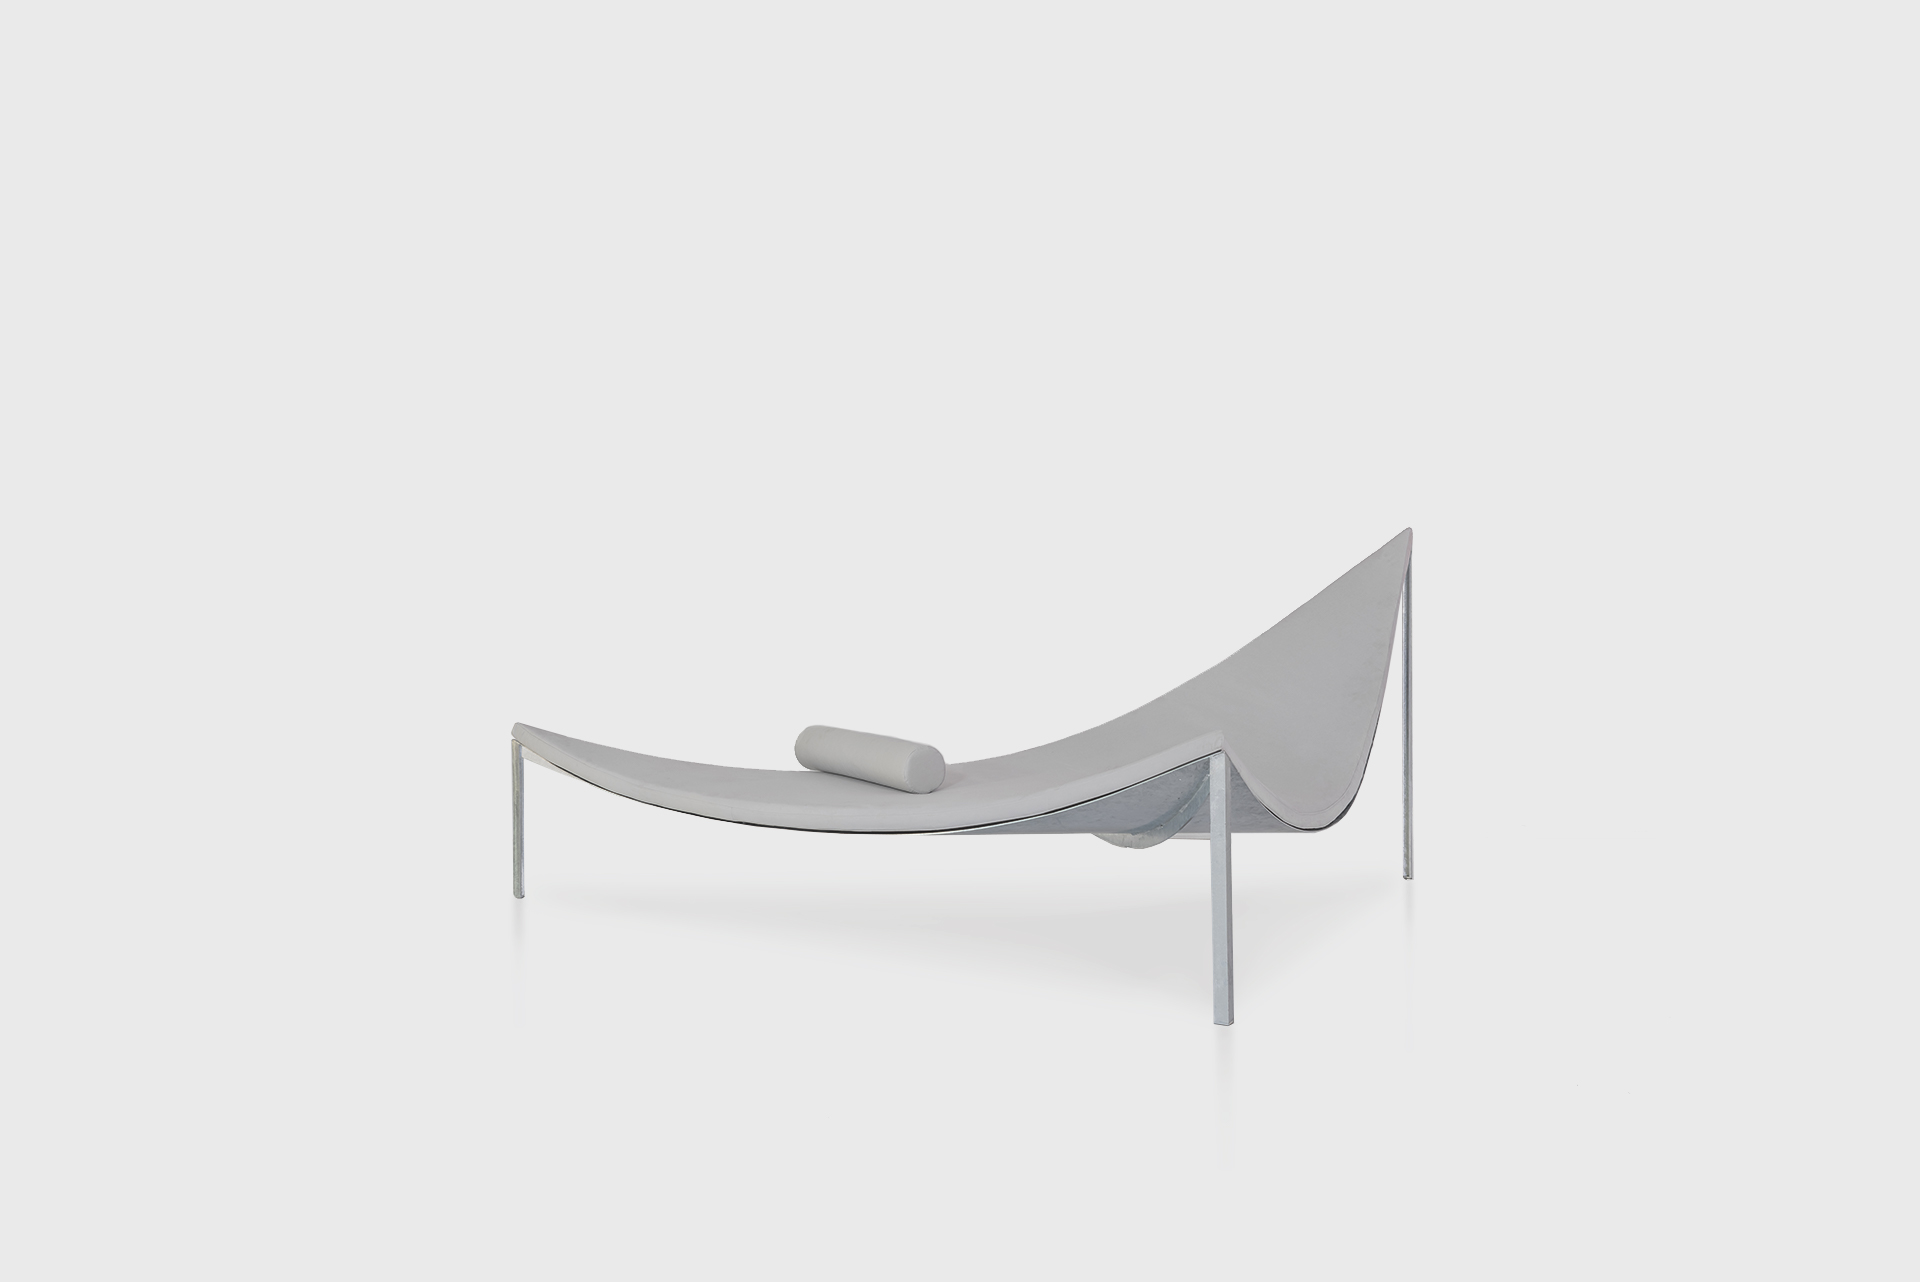 """Triangle Chaise Sofa From the series """"Beasts"""" Produced in exclusive for SIDE GALLERY Manufactured by ERTL und ZULL Berlin, 2021 Galvanized steel, upholstery"""